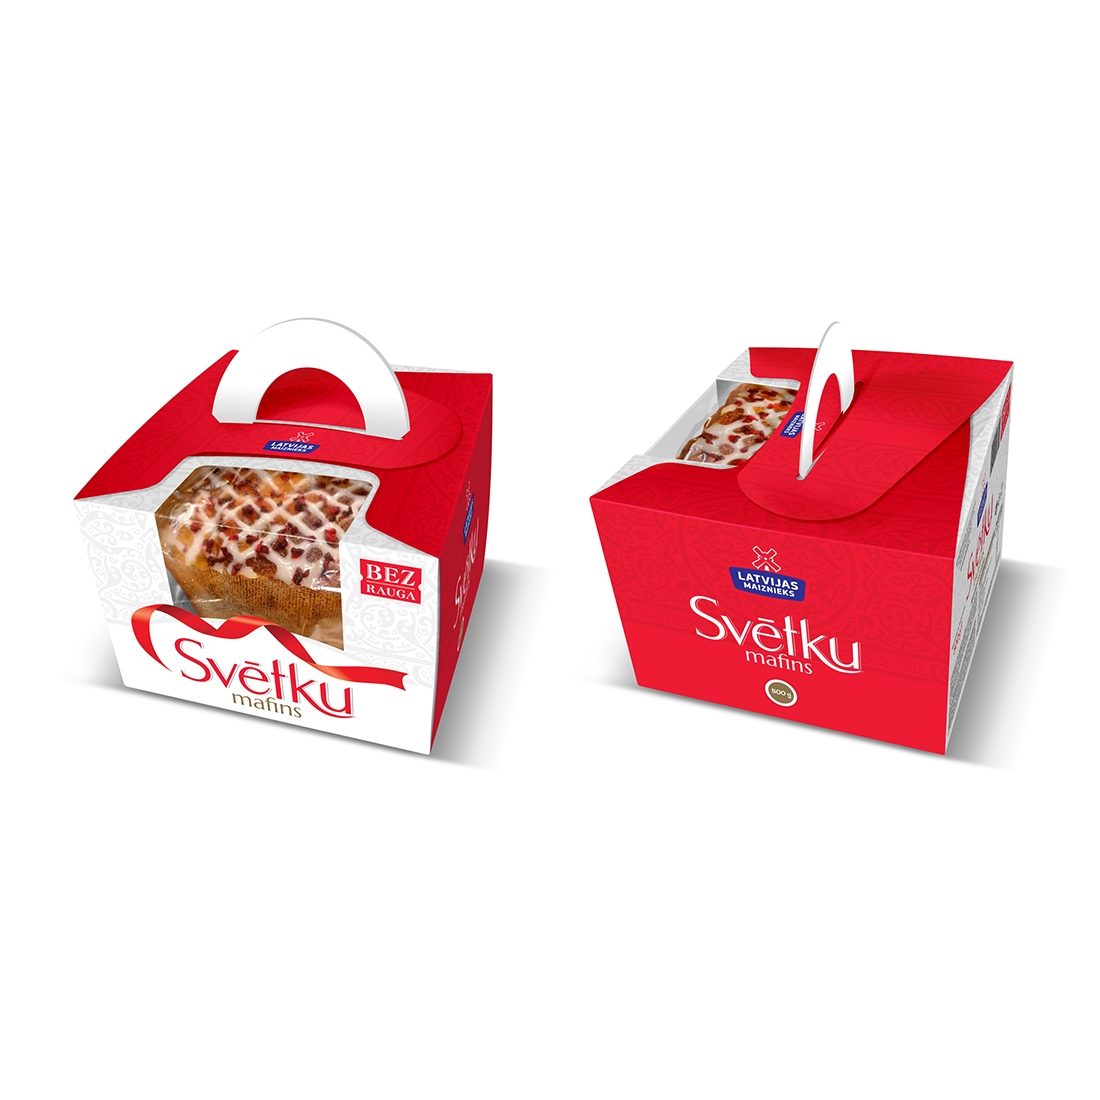 The holiday muffin 500g